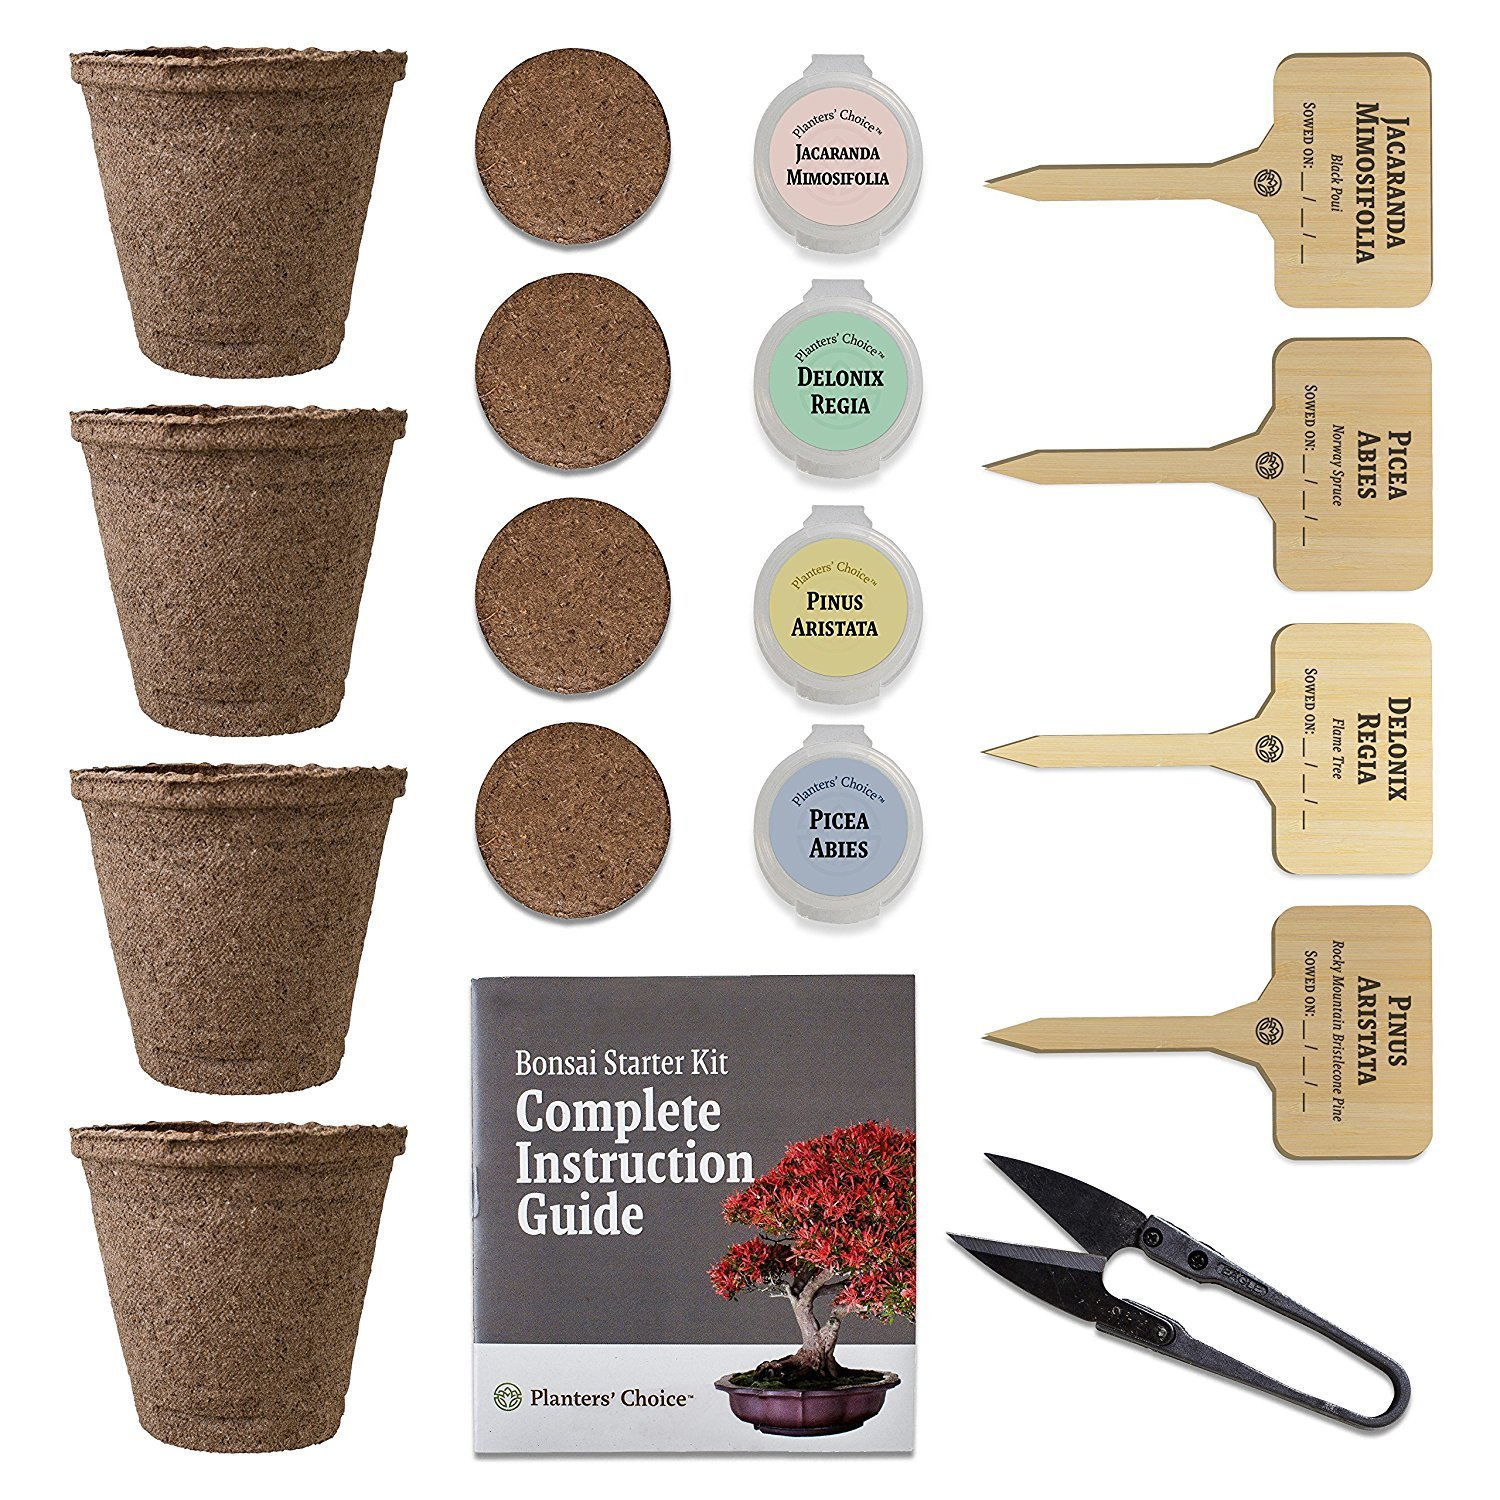 Planters' Choice Bonsai Starter Kit + Tool Kit - the Complete Kit to Easily Grow 4 Bonsai Trees from Seed with Comprehensive Guide & Bamboo Plant Markers - Unique Gift Idea by Planters' Choice (Image #3)